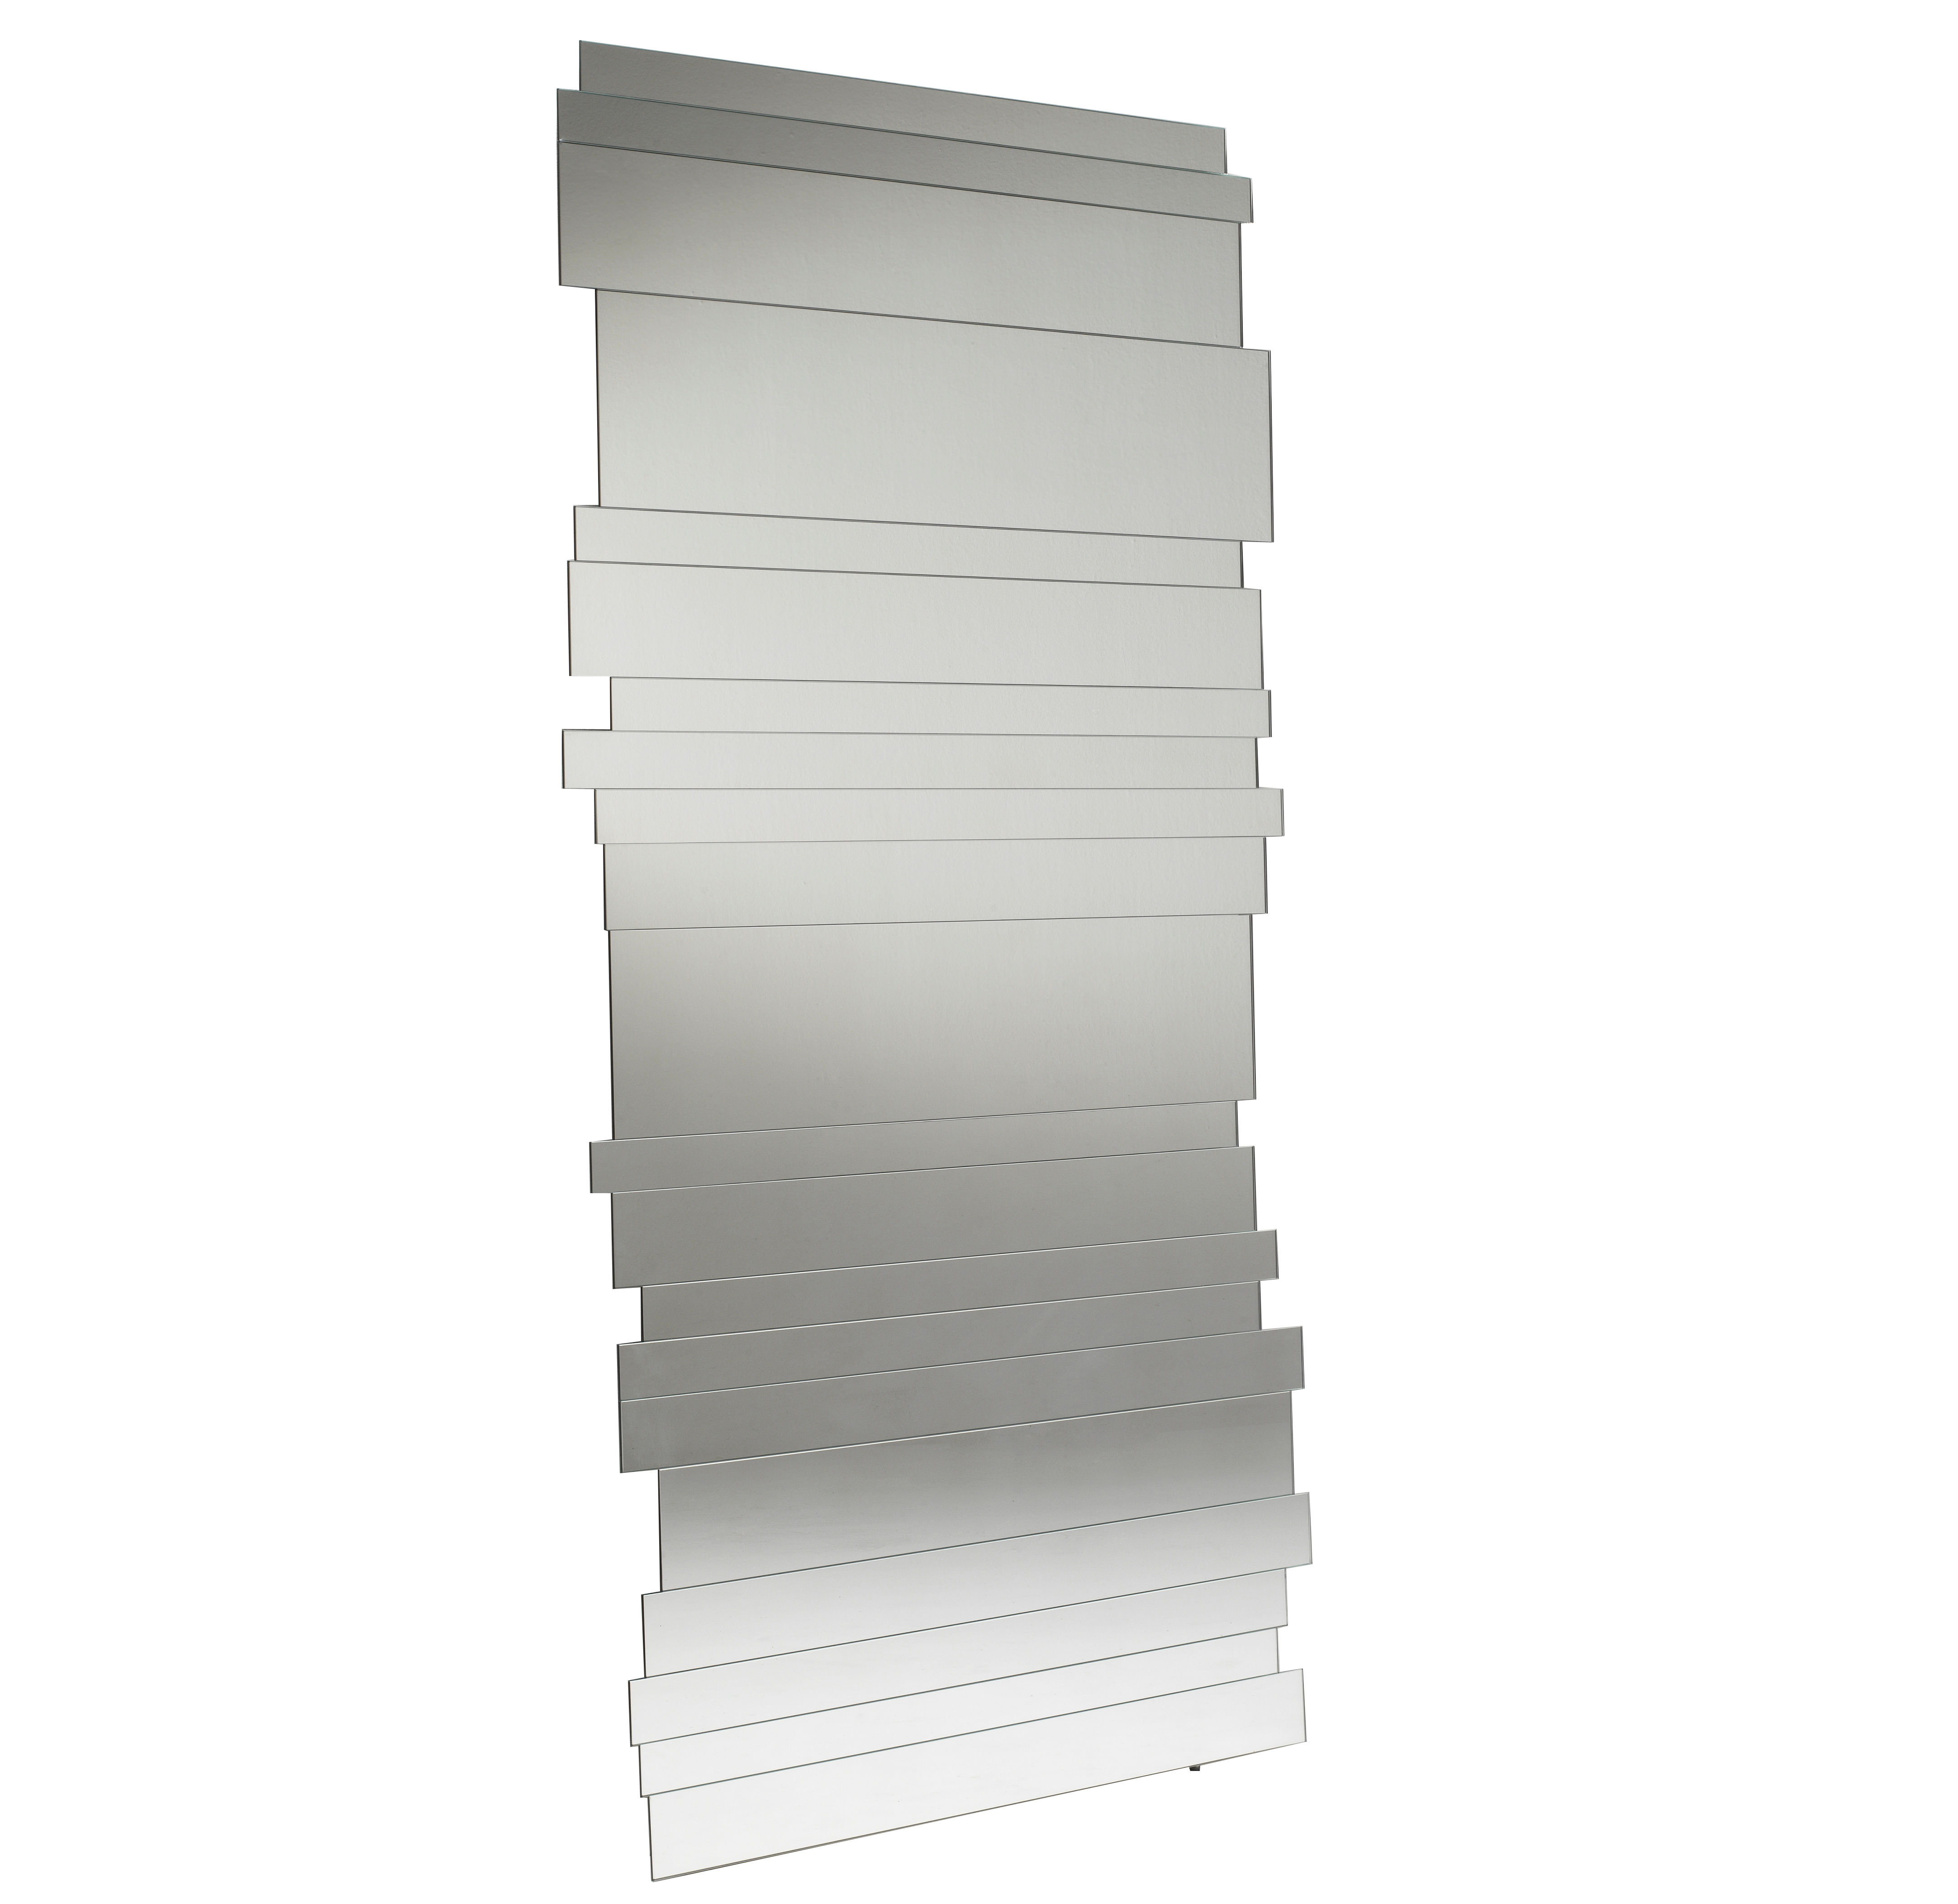 Furniture - Mirrors - Paradox Wall mirror by Glas Italia - Mirror - Glass